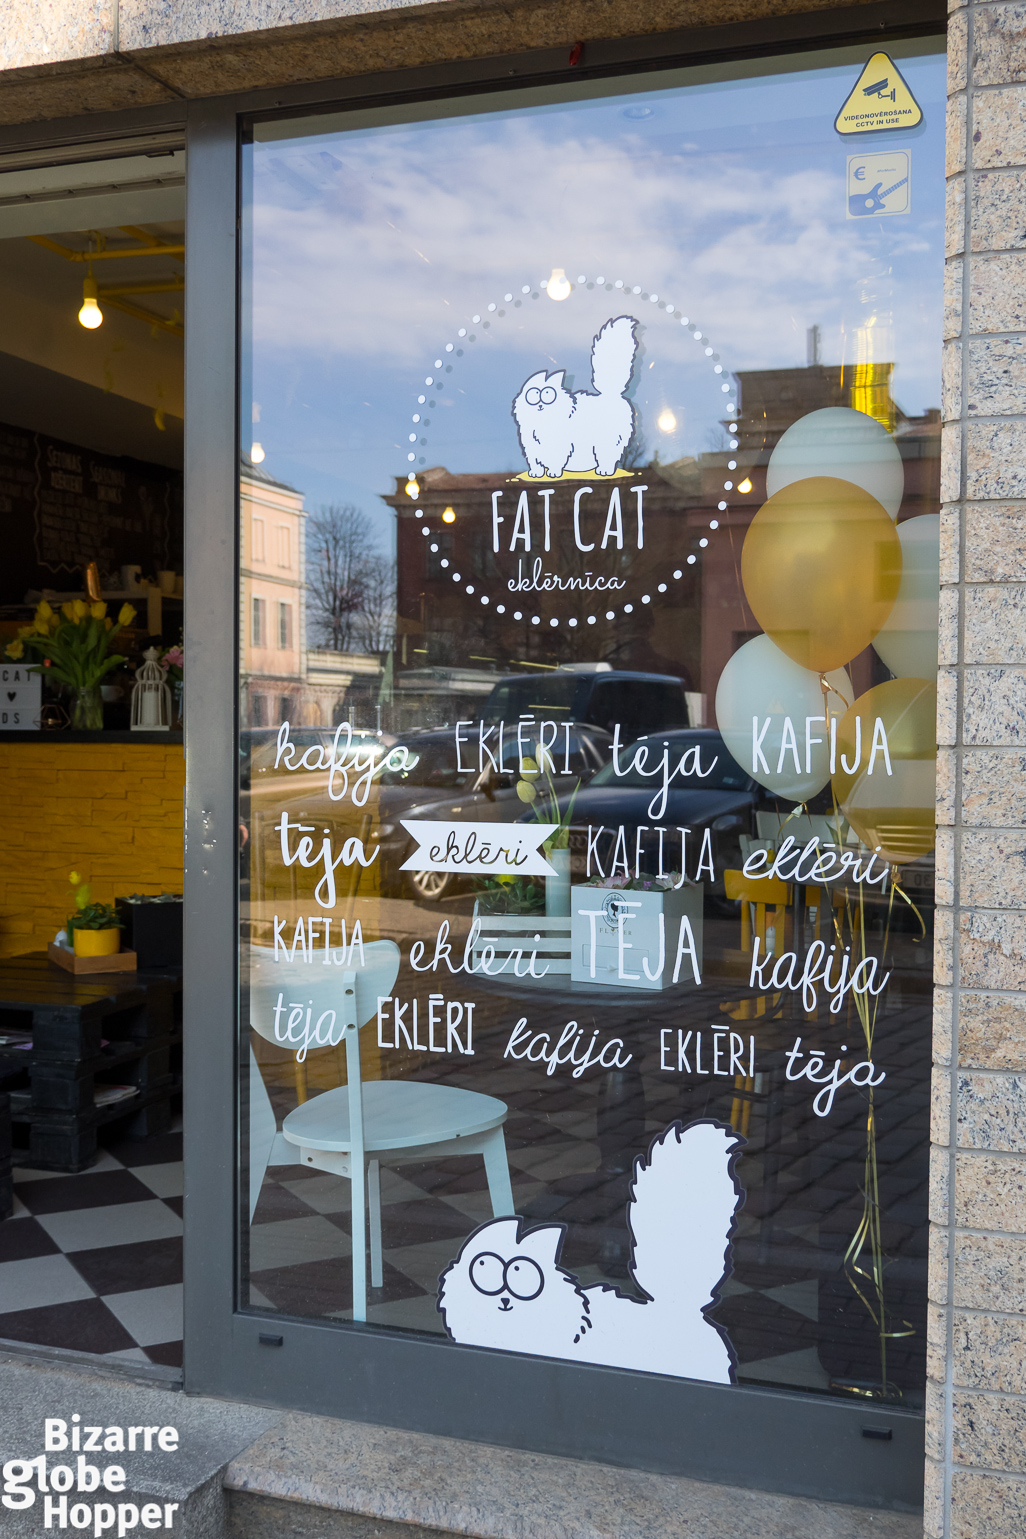 Riga S Fat Cat Café Is Famous For Its Eclairs And Cupcakes